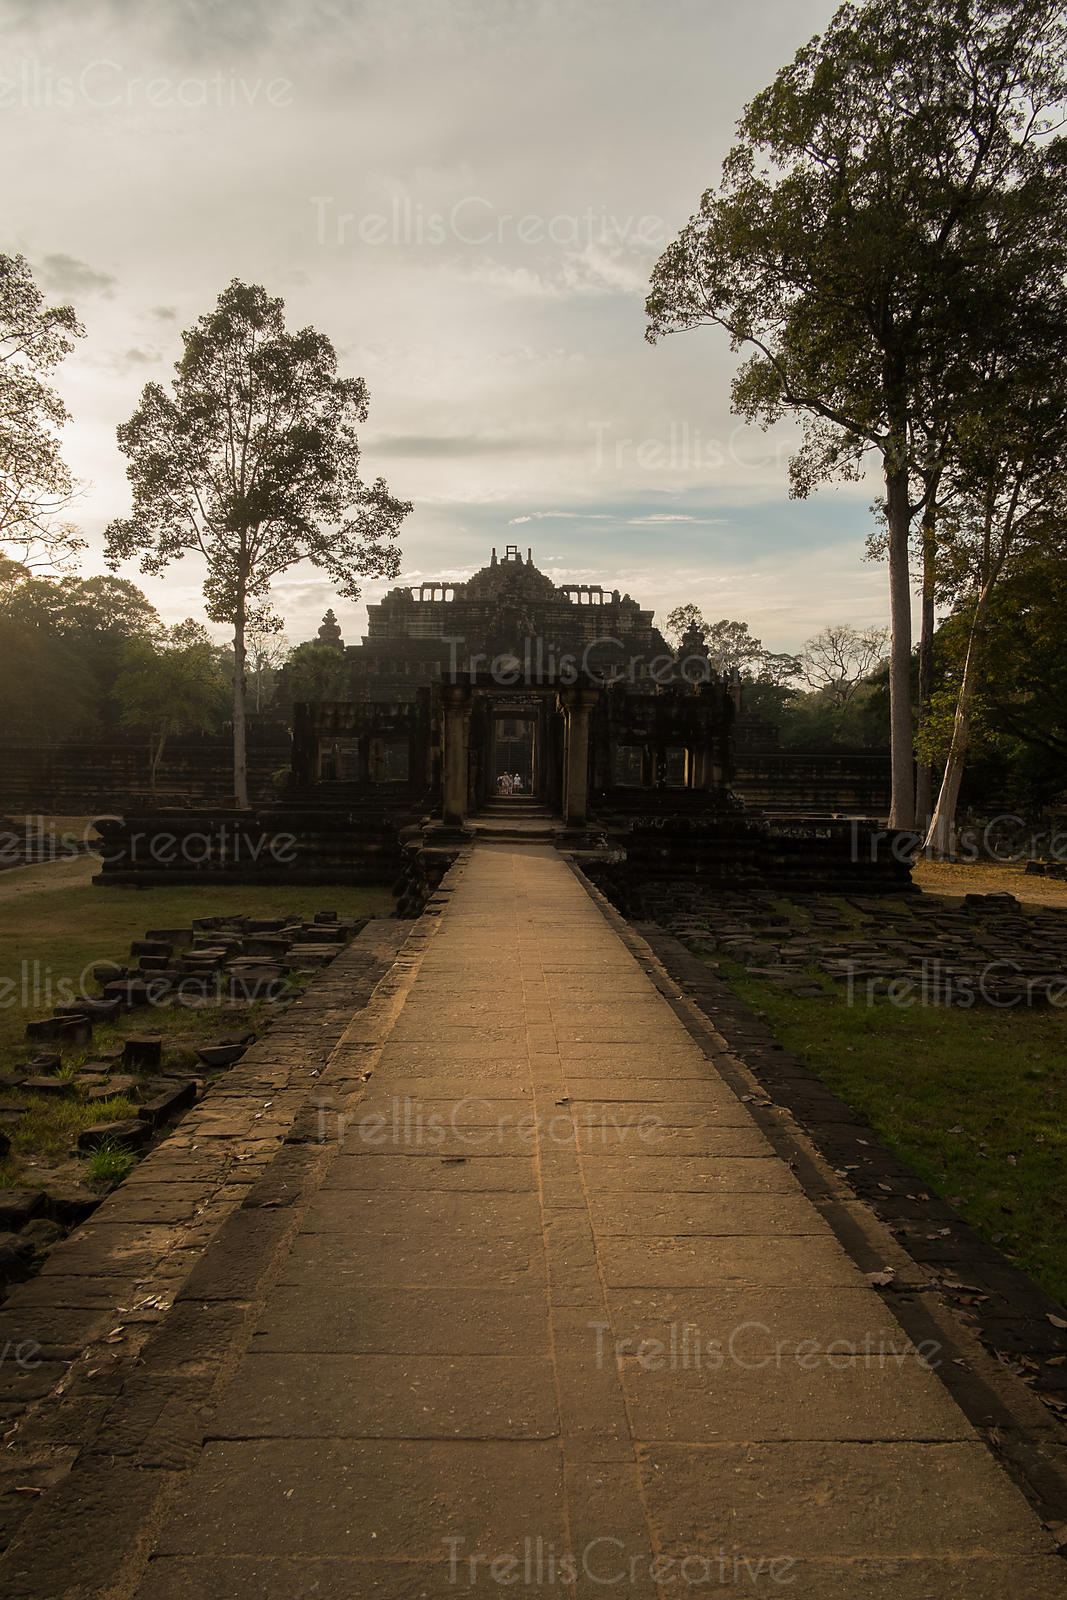 The Terrace of the Elephants is part of the walled city of Angkor Thom, a ruined temple complex in Cambodia